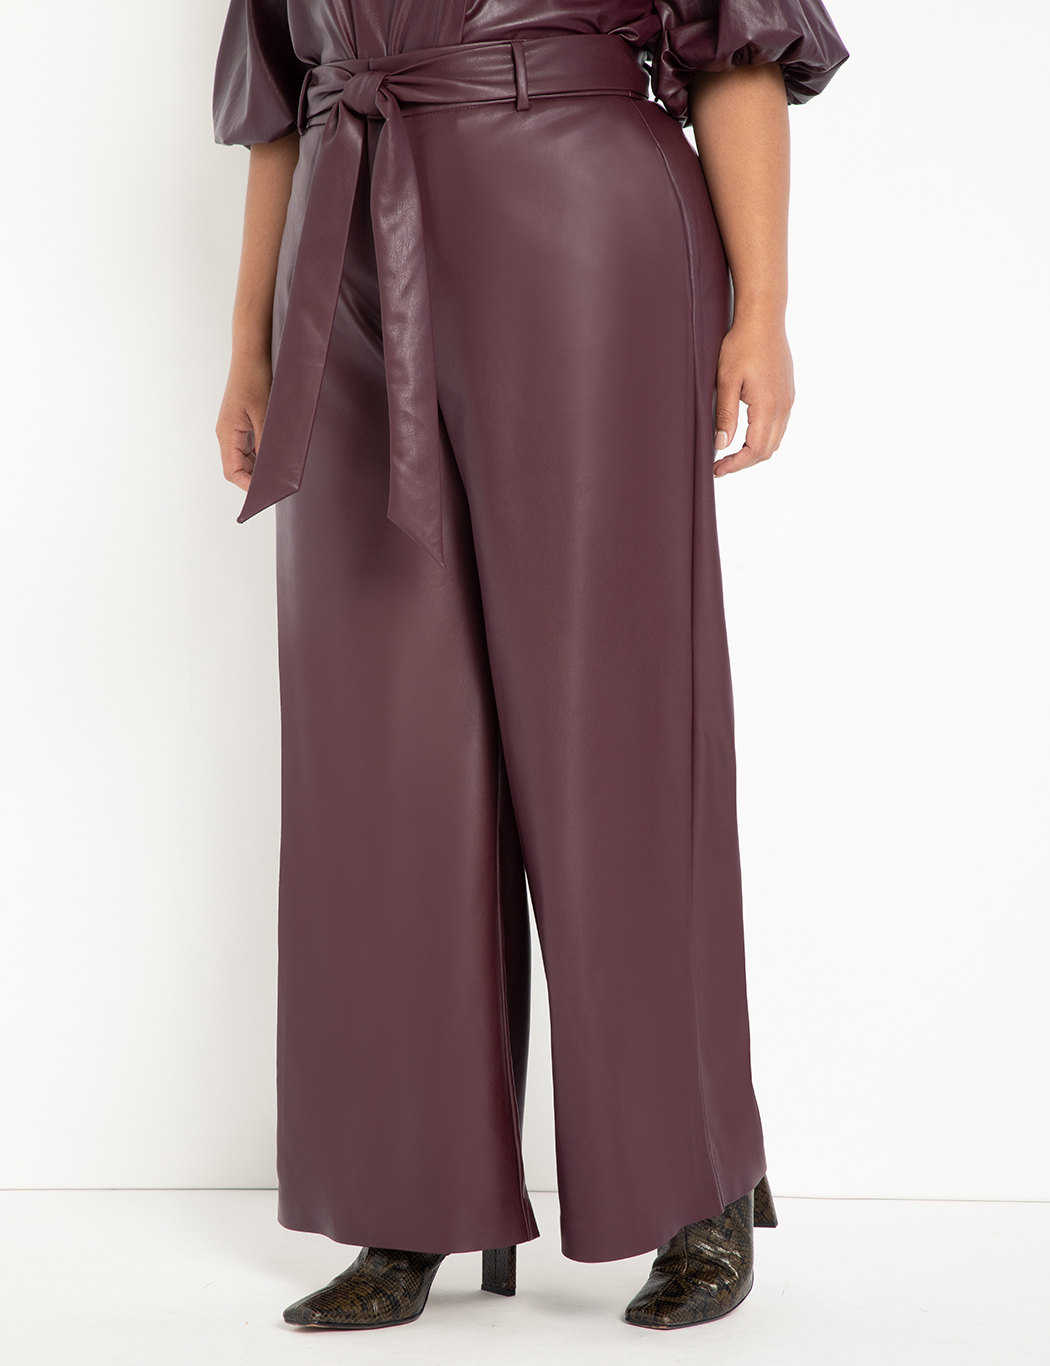 Tie Waist Wide Leg Faux Leather Pant